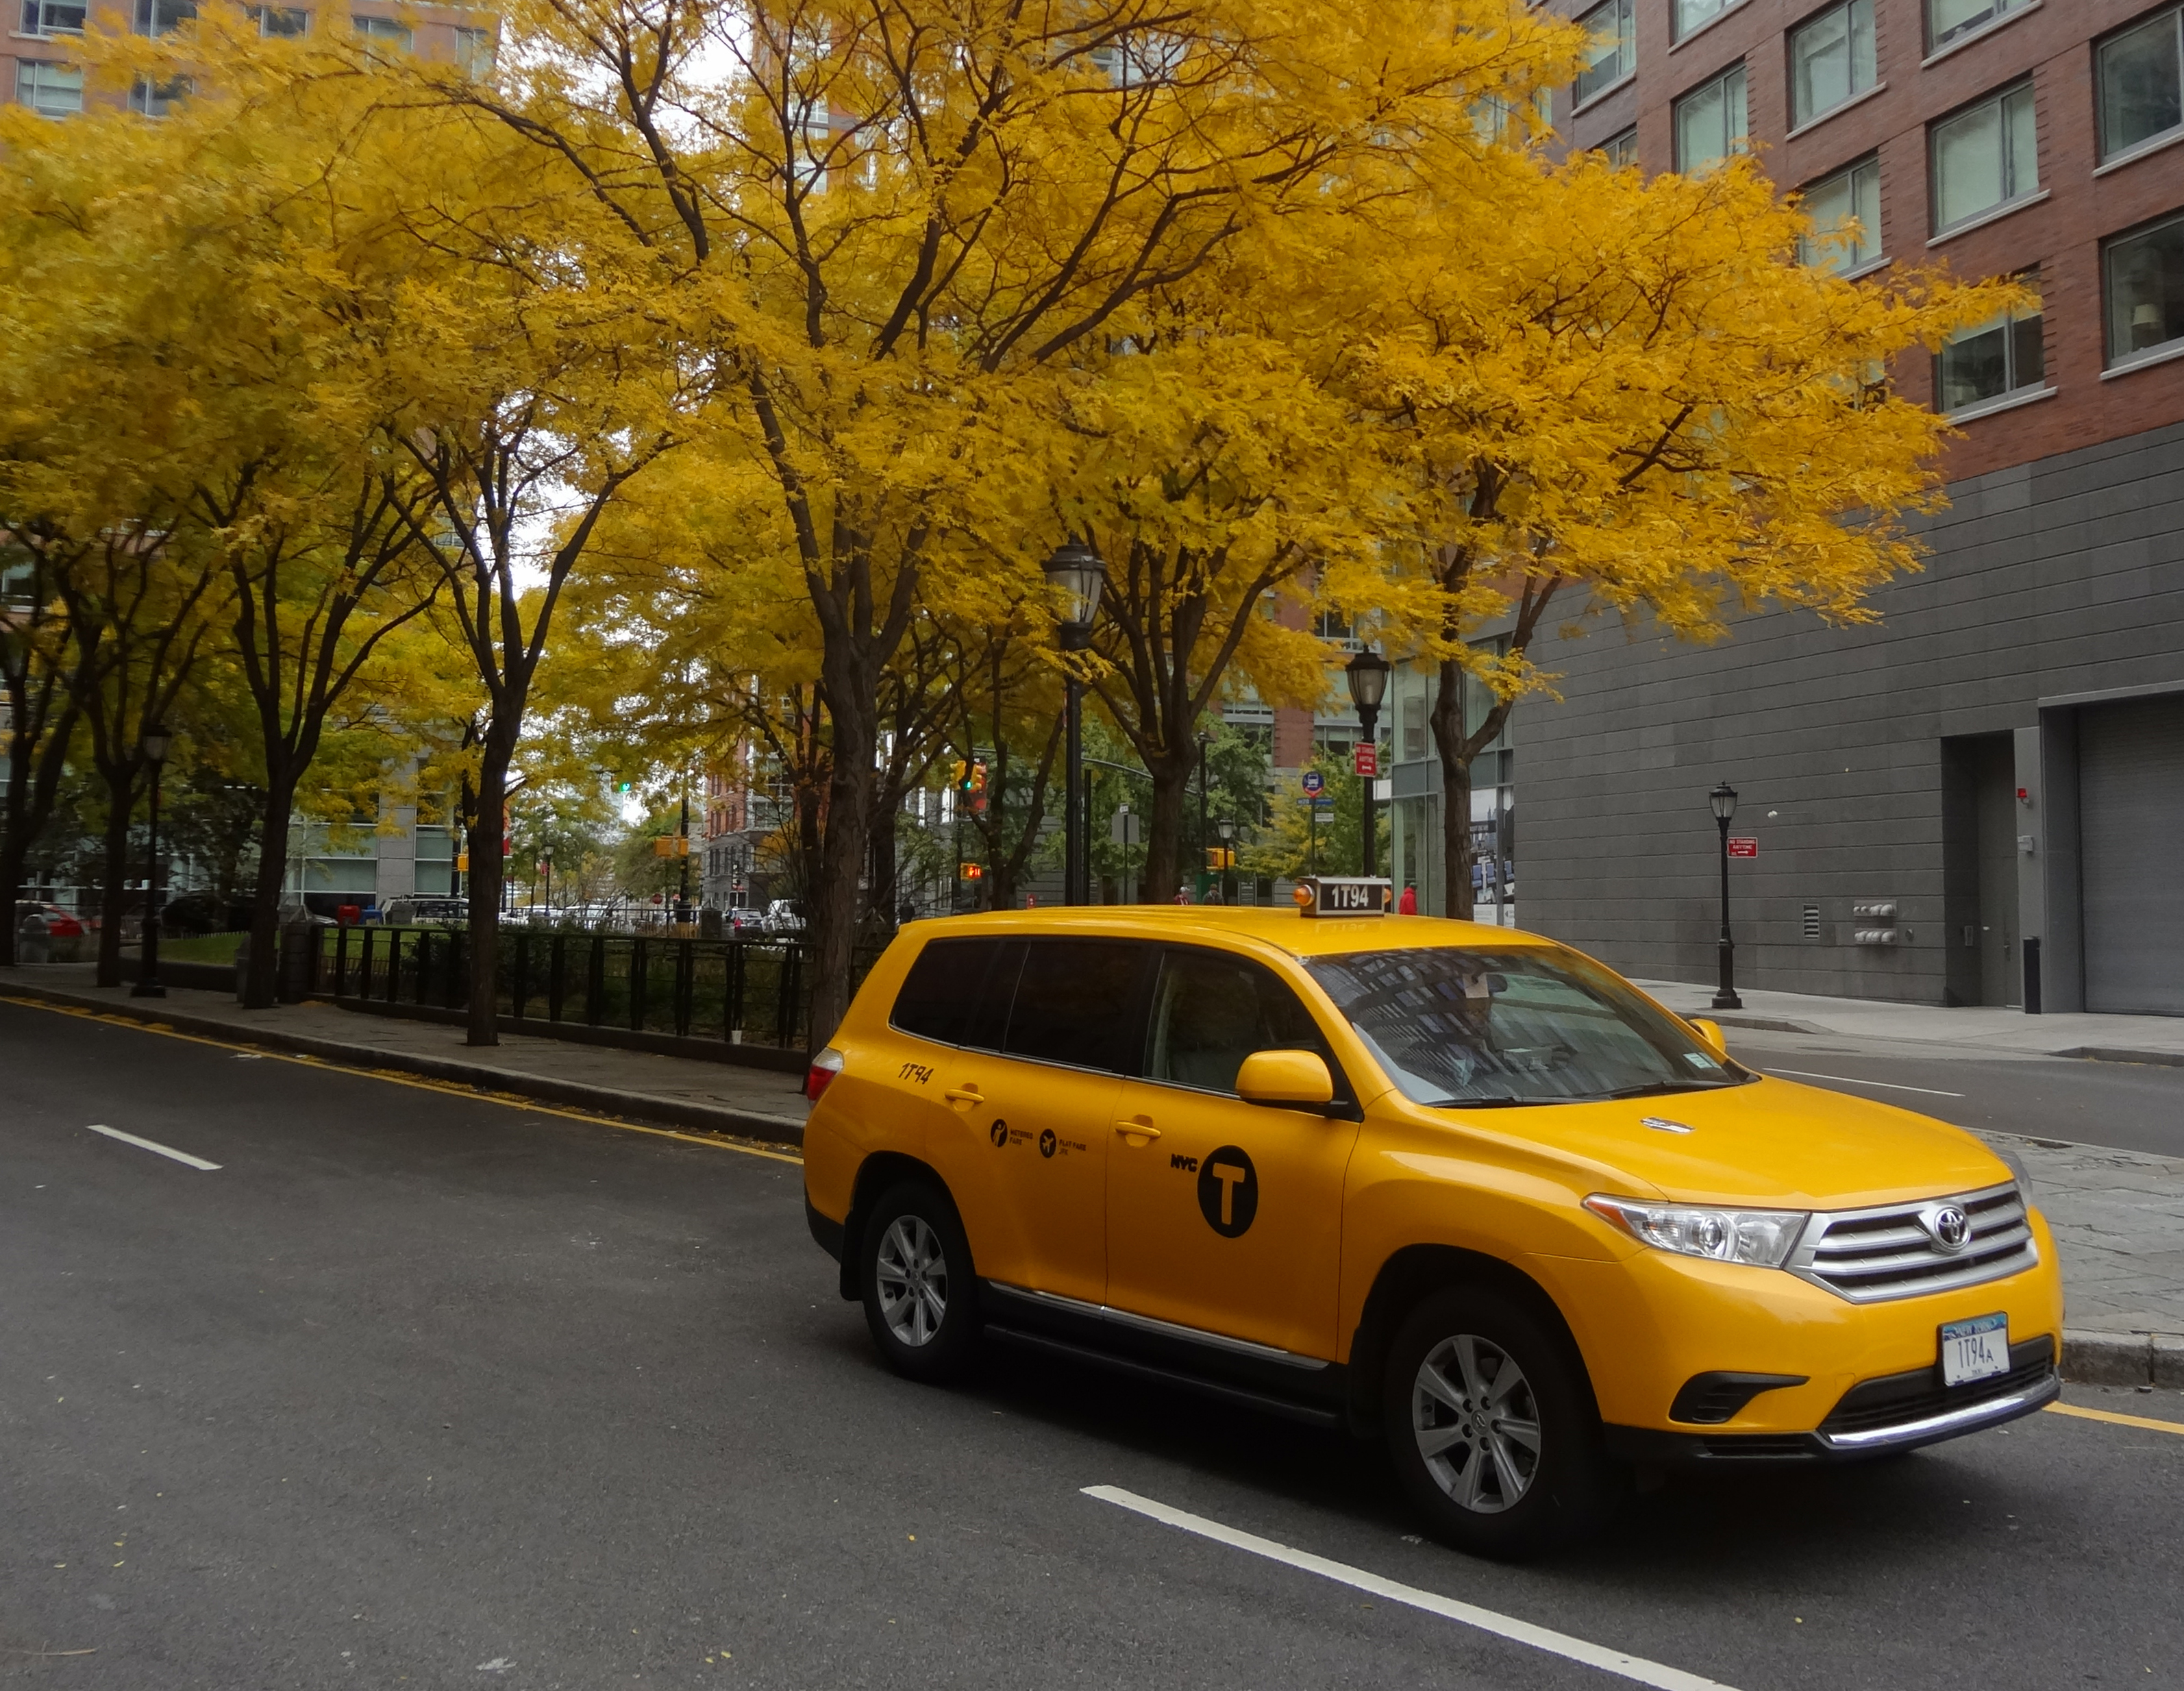 Yellow taxi and locust trees